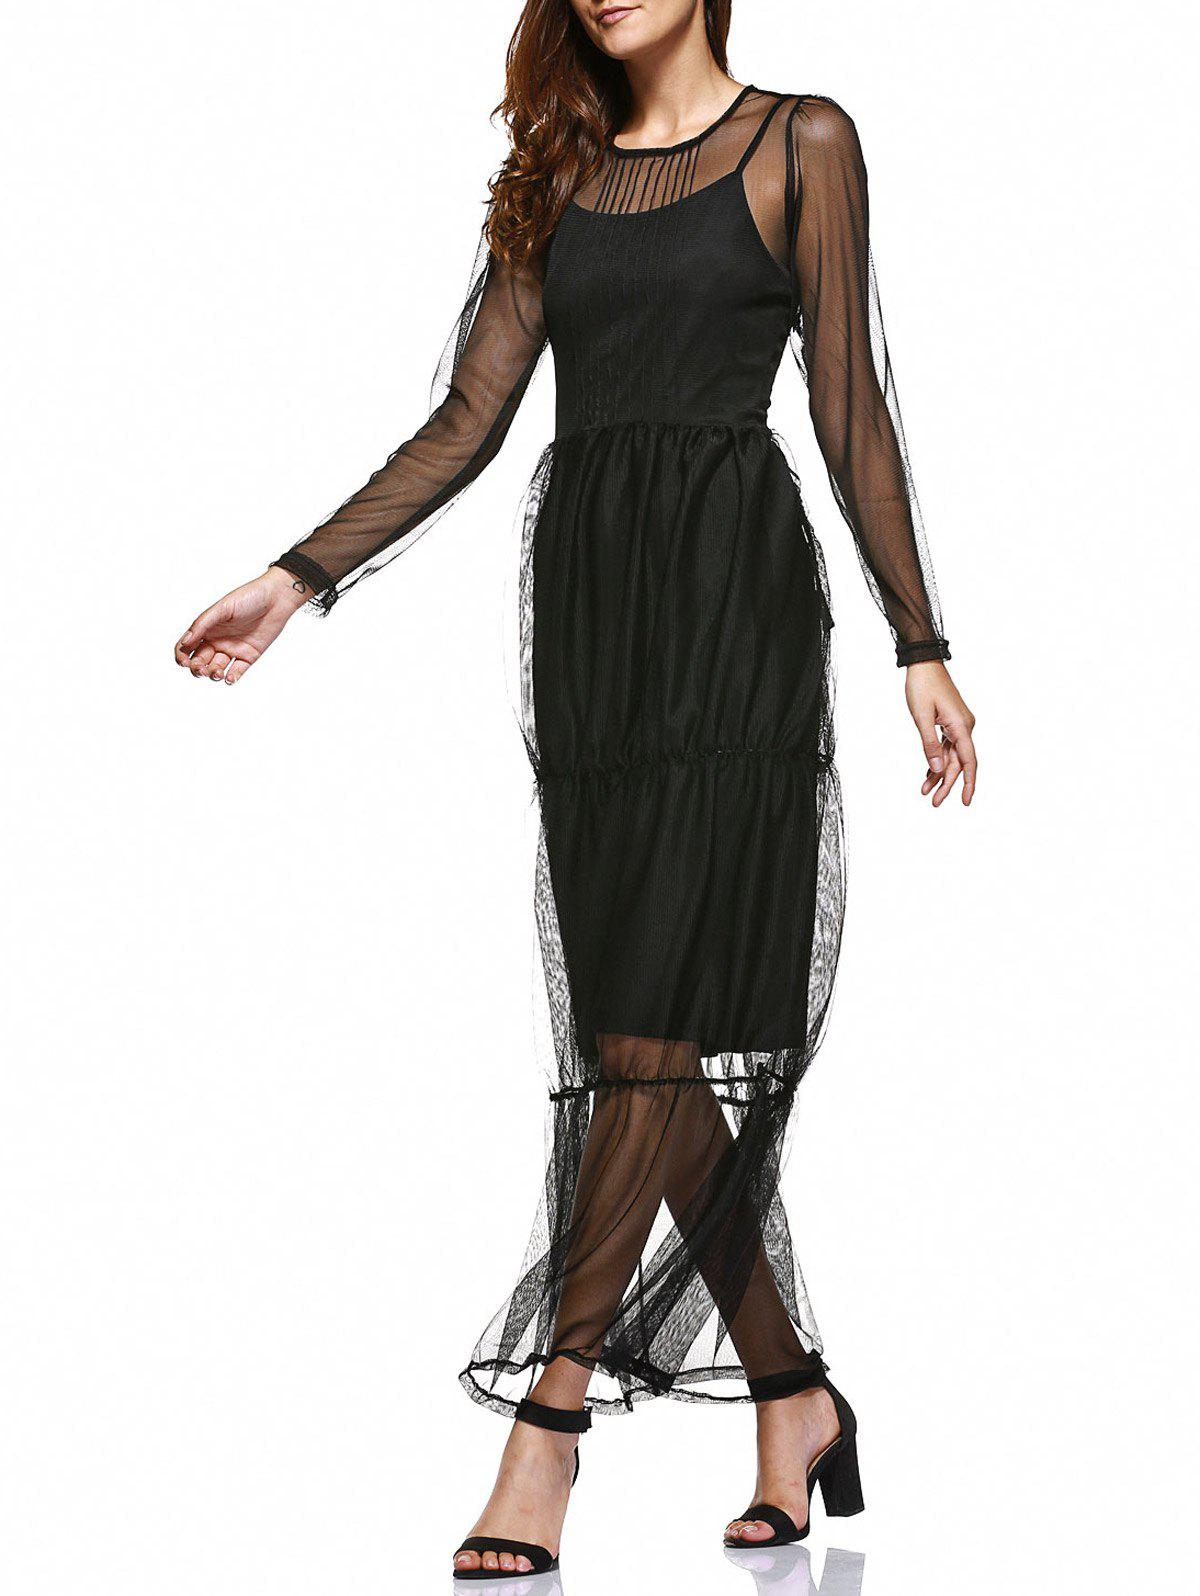 bb11763efbb 39% OFF  Simple Black Sundress And Mesh See-Through Layered Dress ...